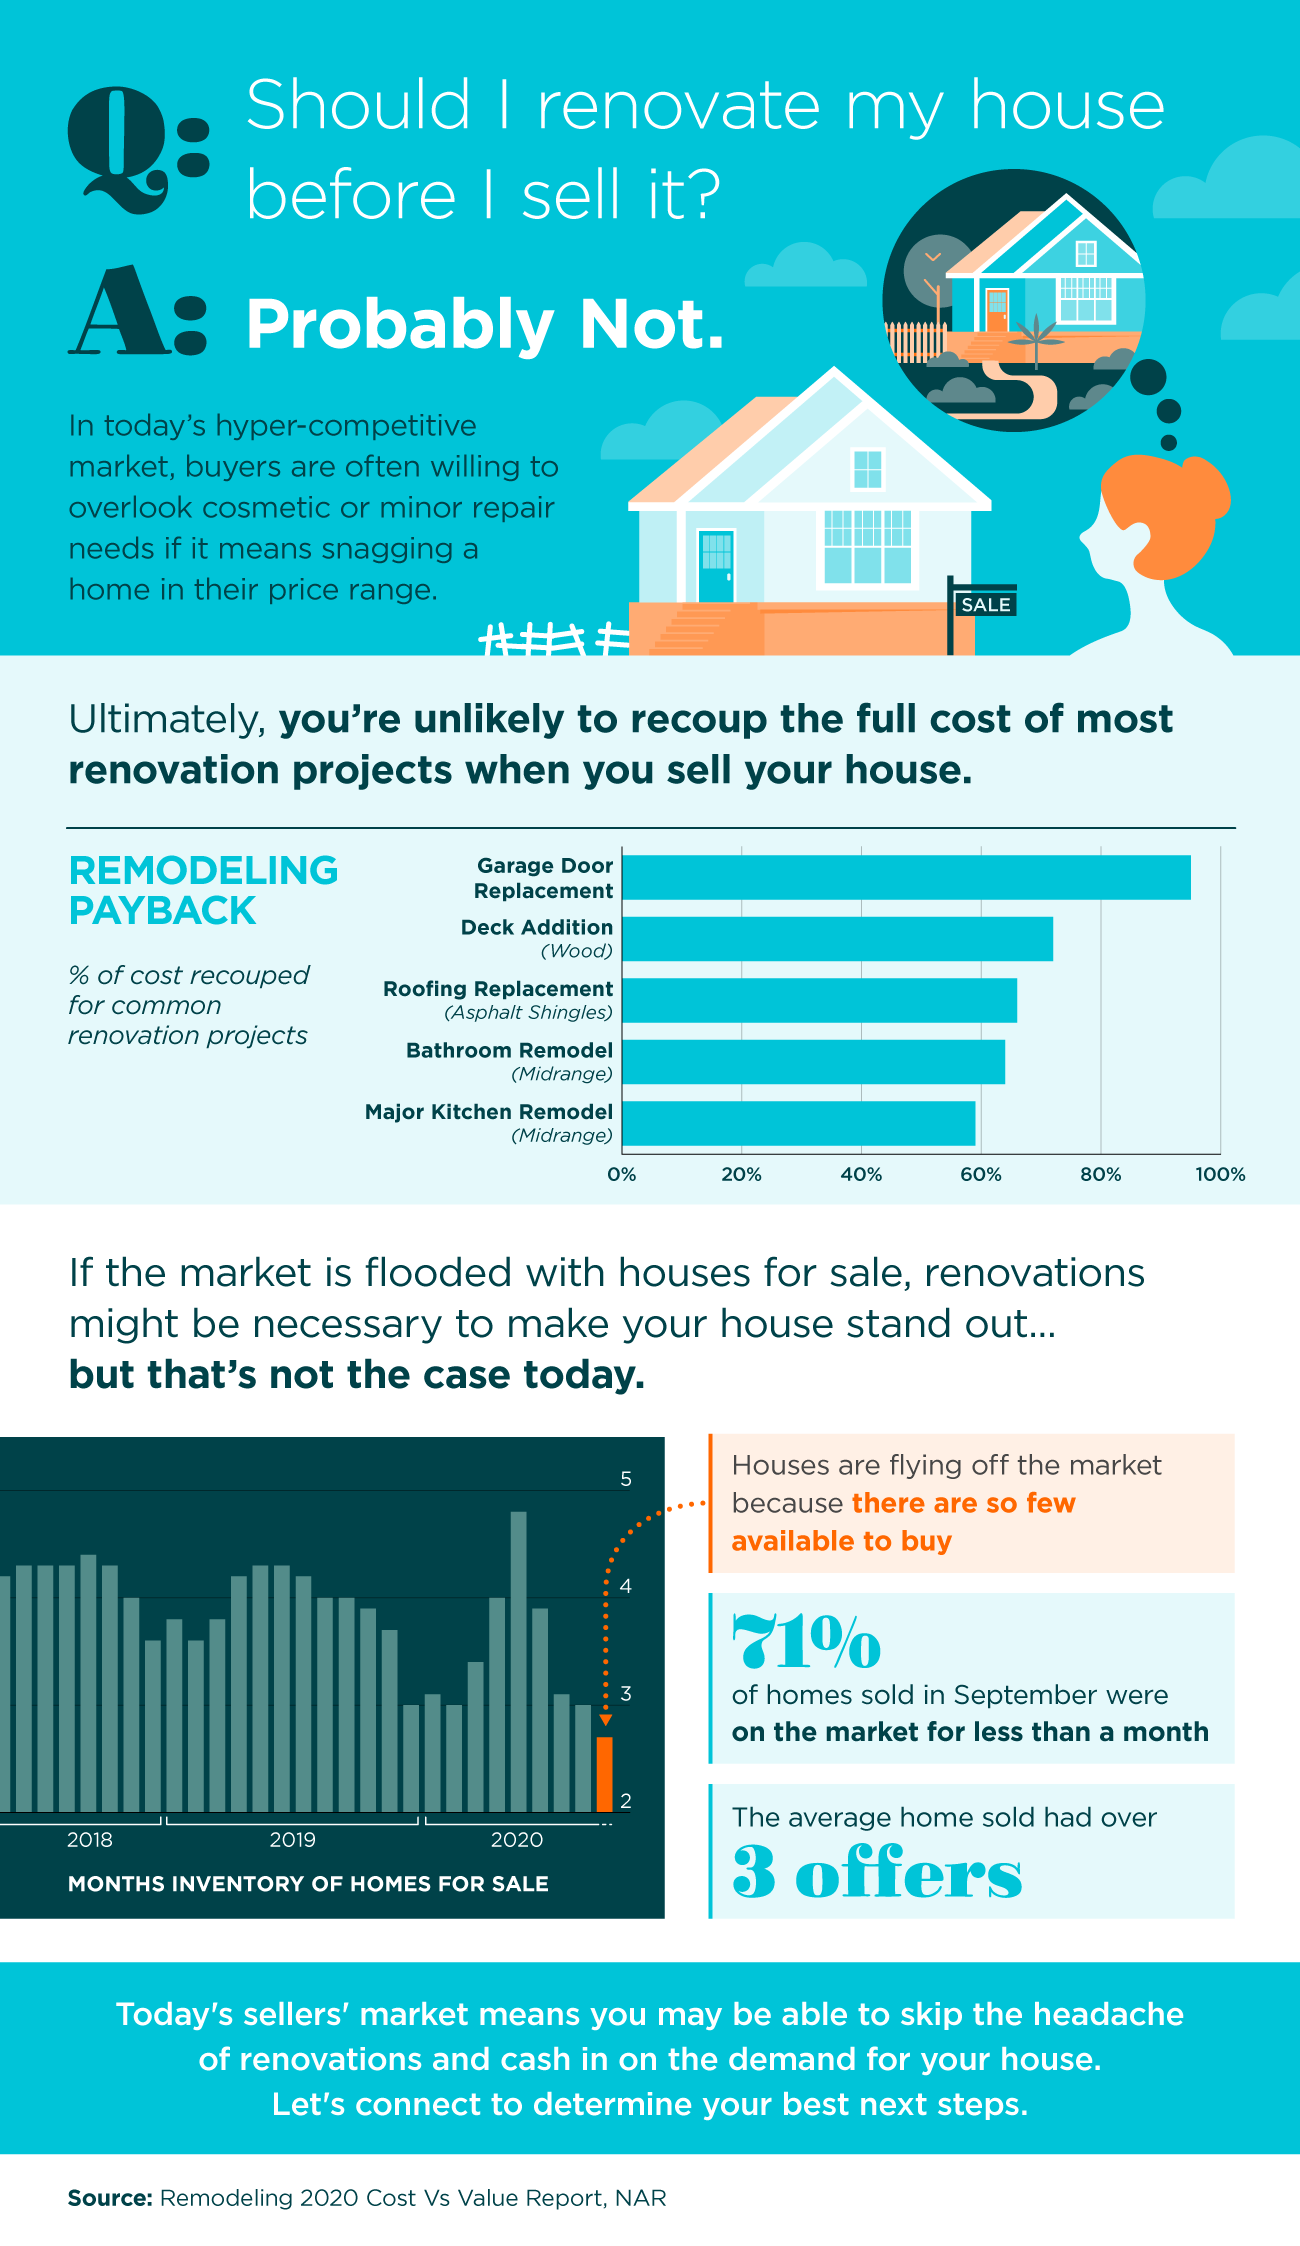 Should I Renovate My House Before I Sell?